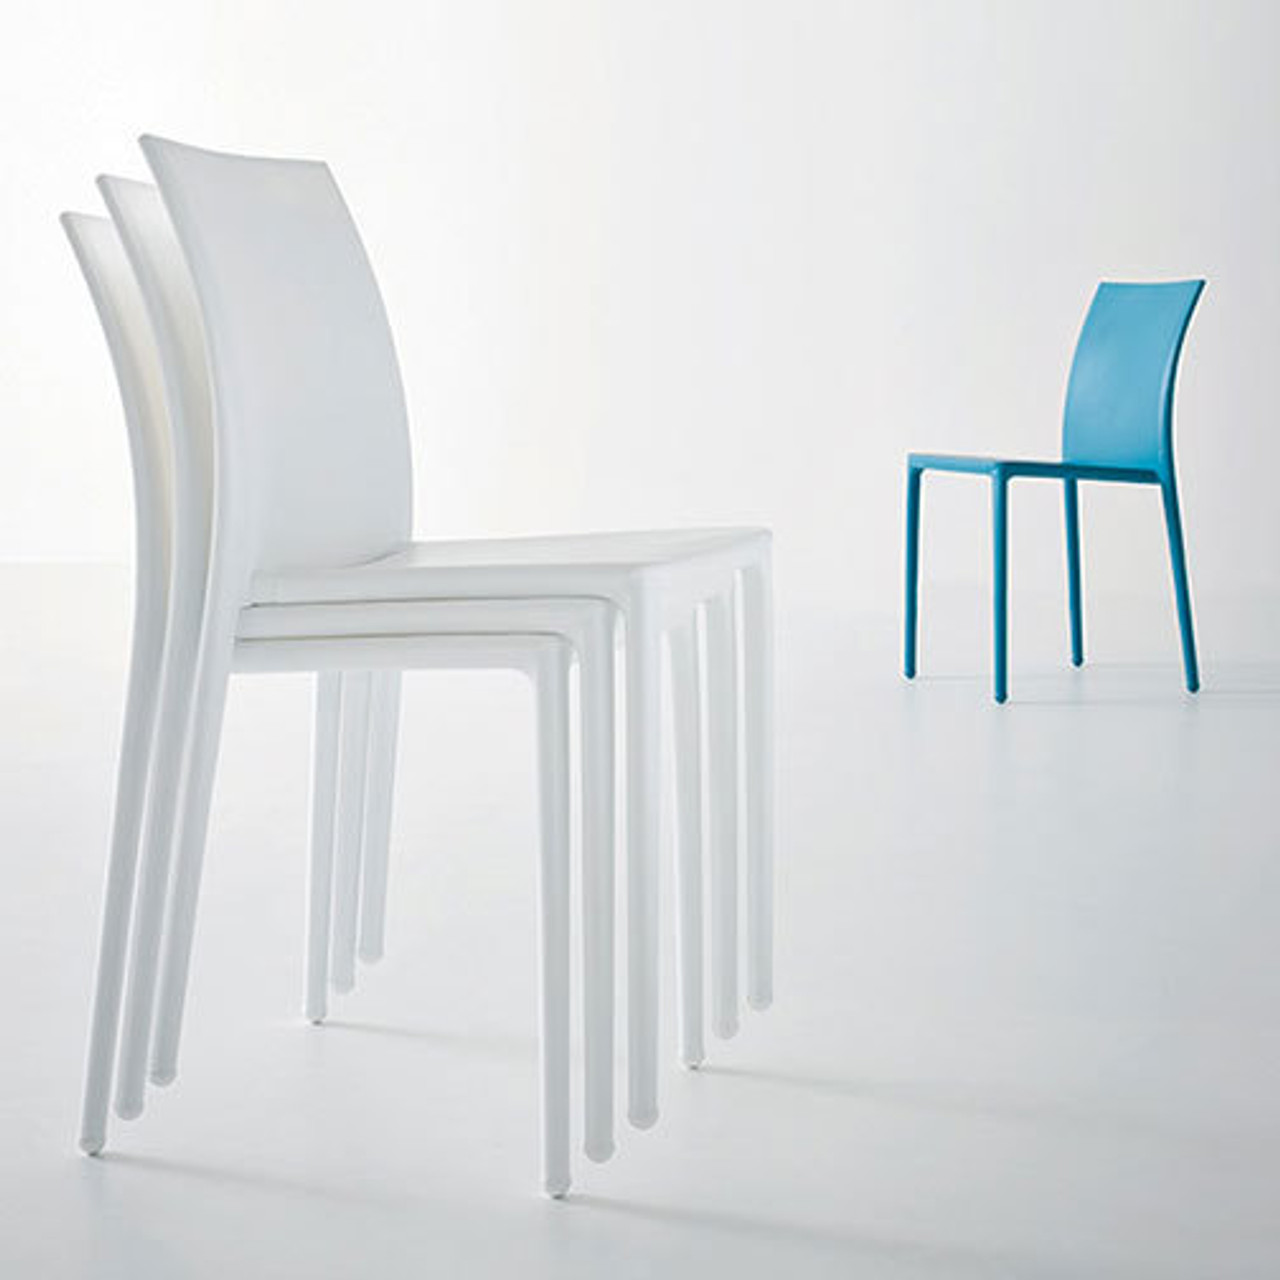 Magnuson Lucido Chairs - Outdoor